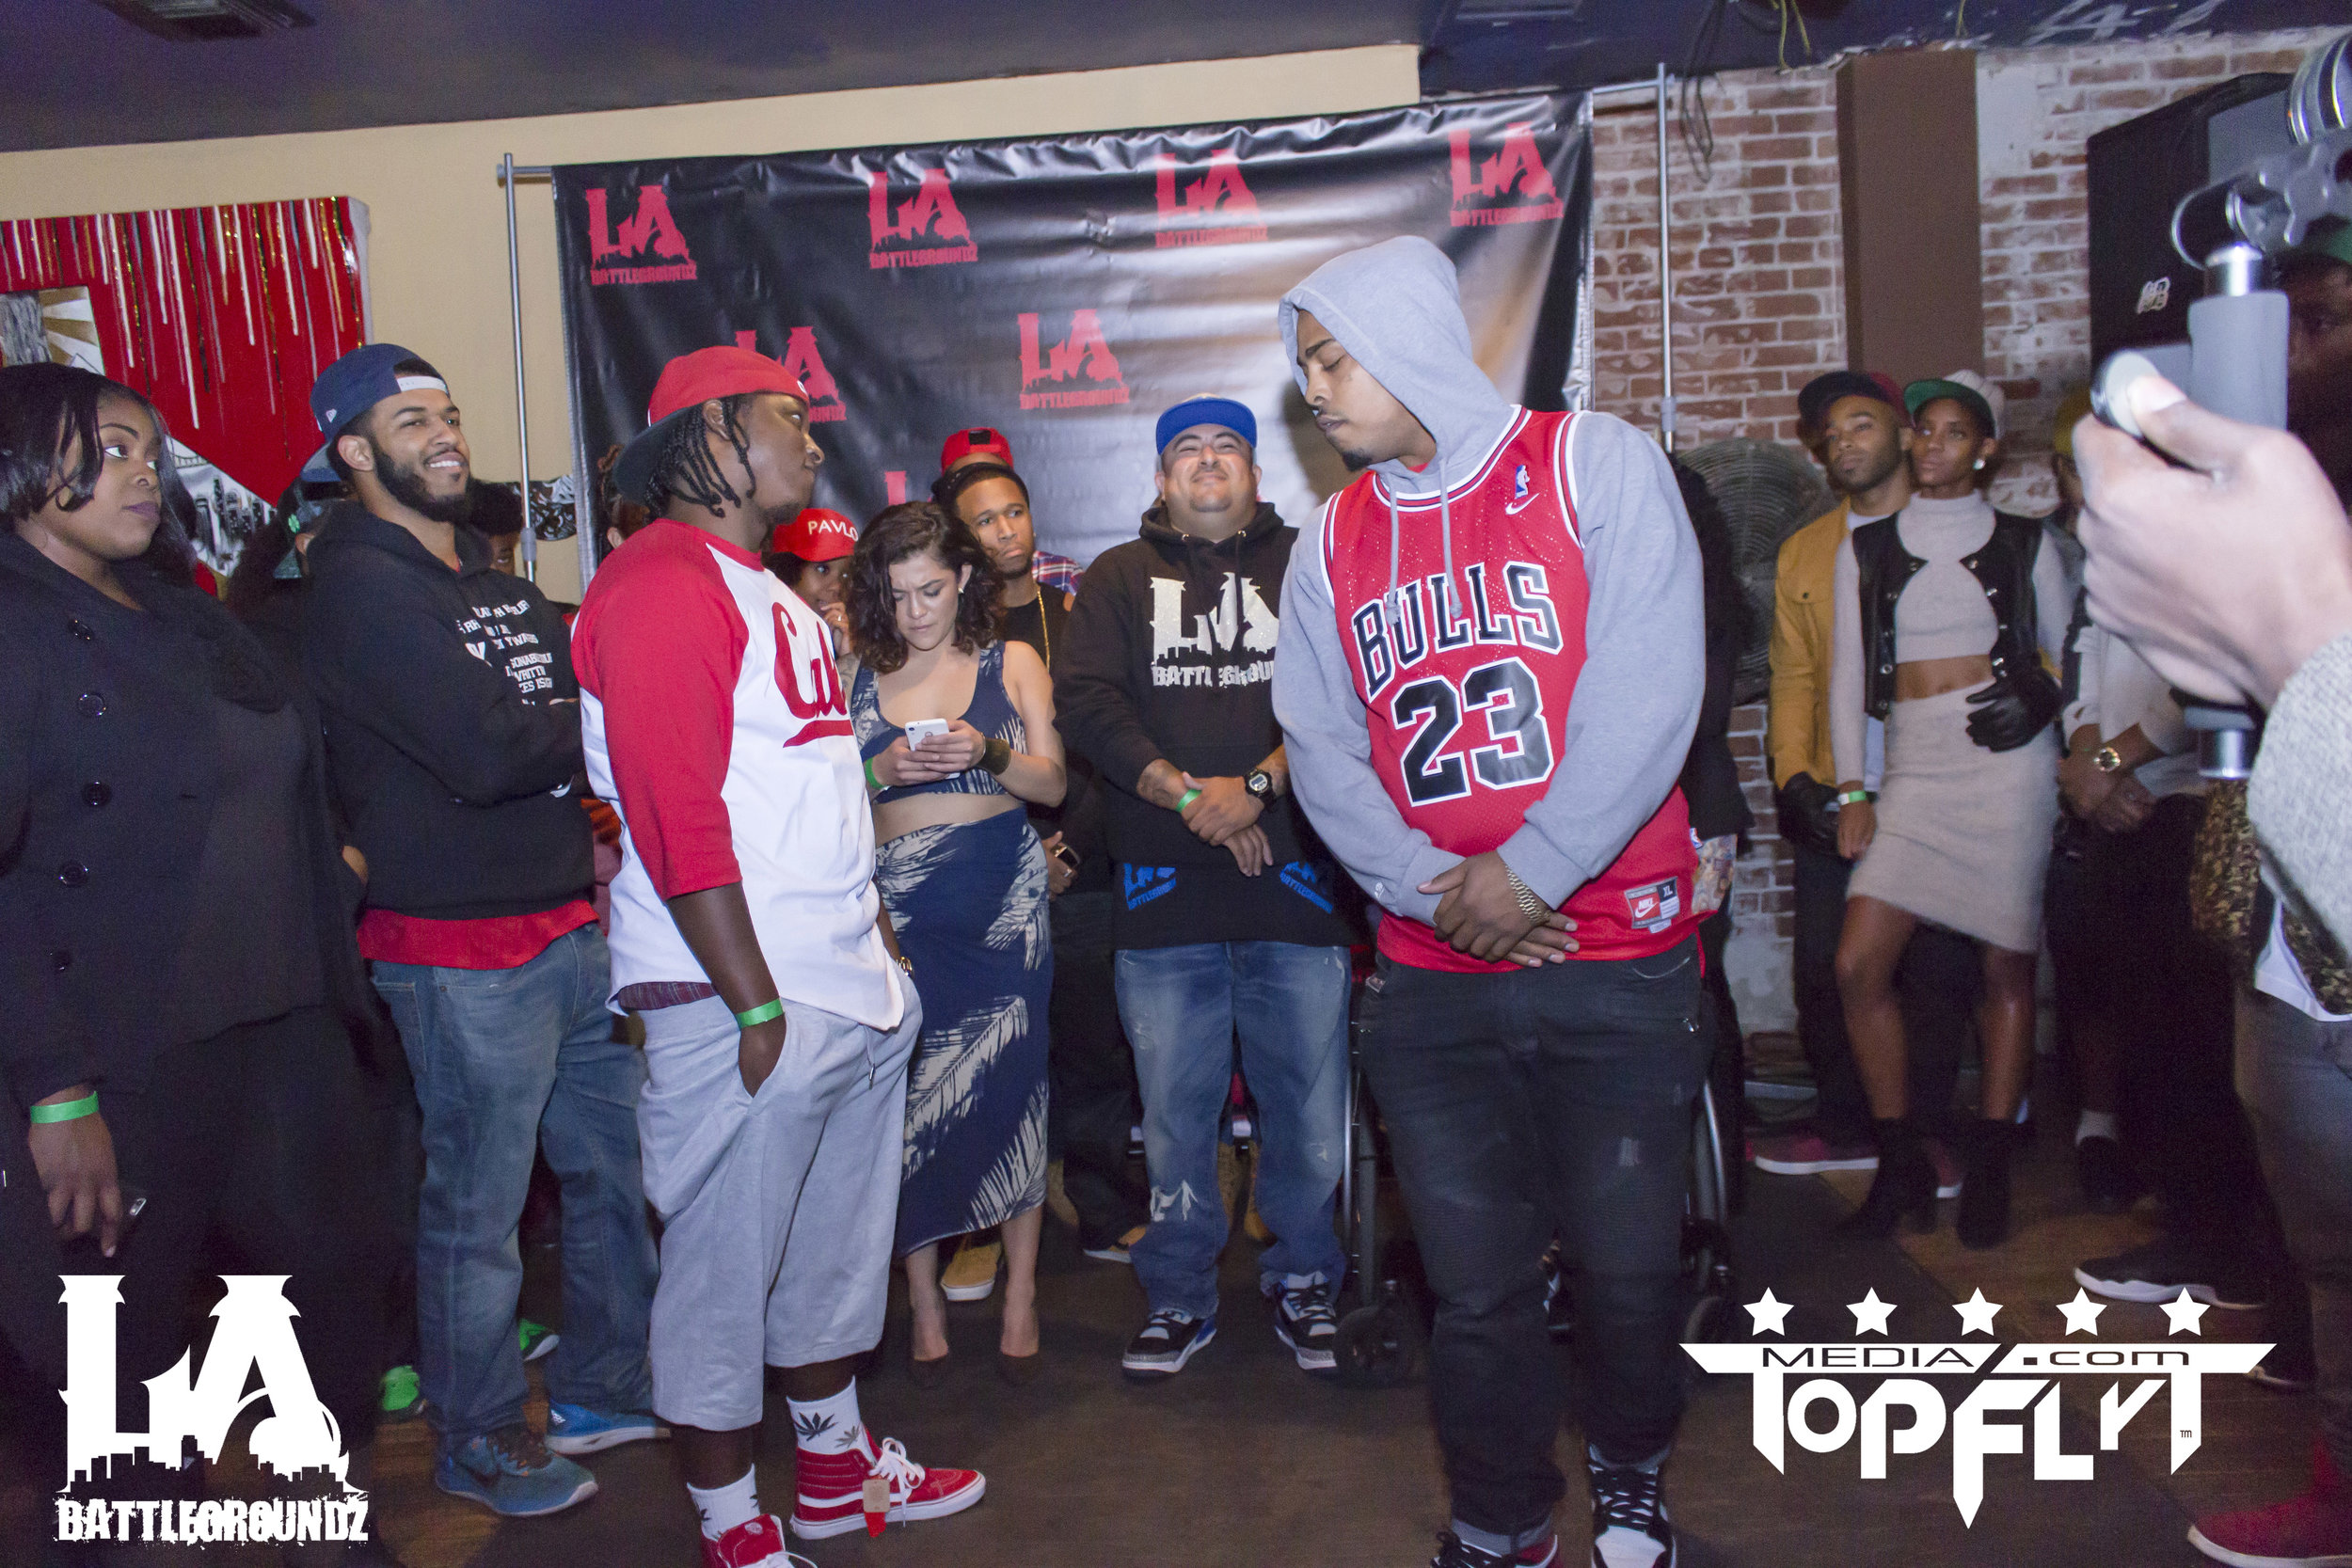 LA Battlegroundz - Decembarfest - The Christening_33.jpg